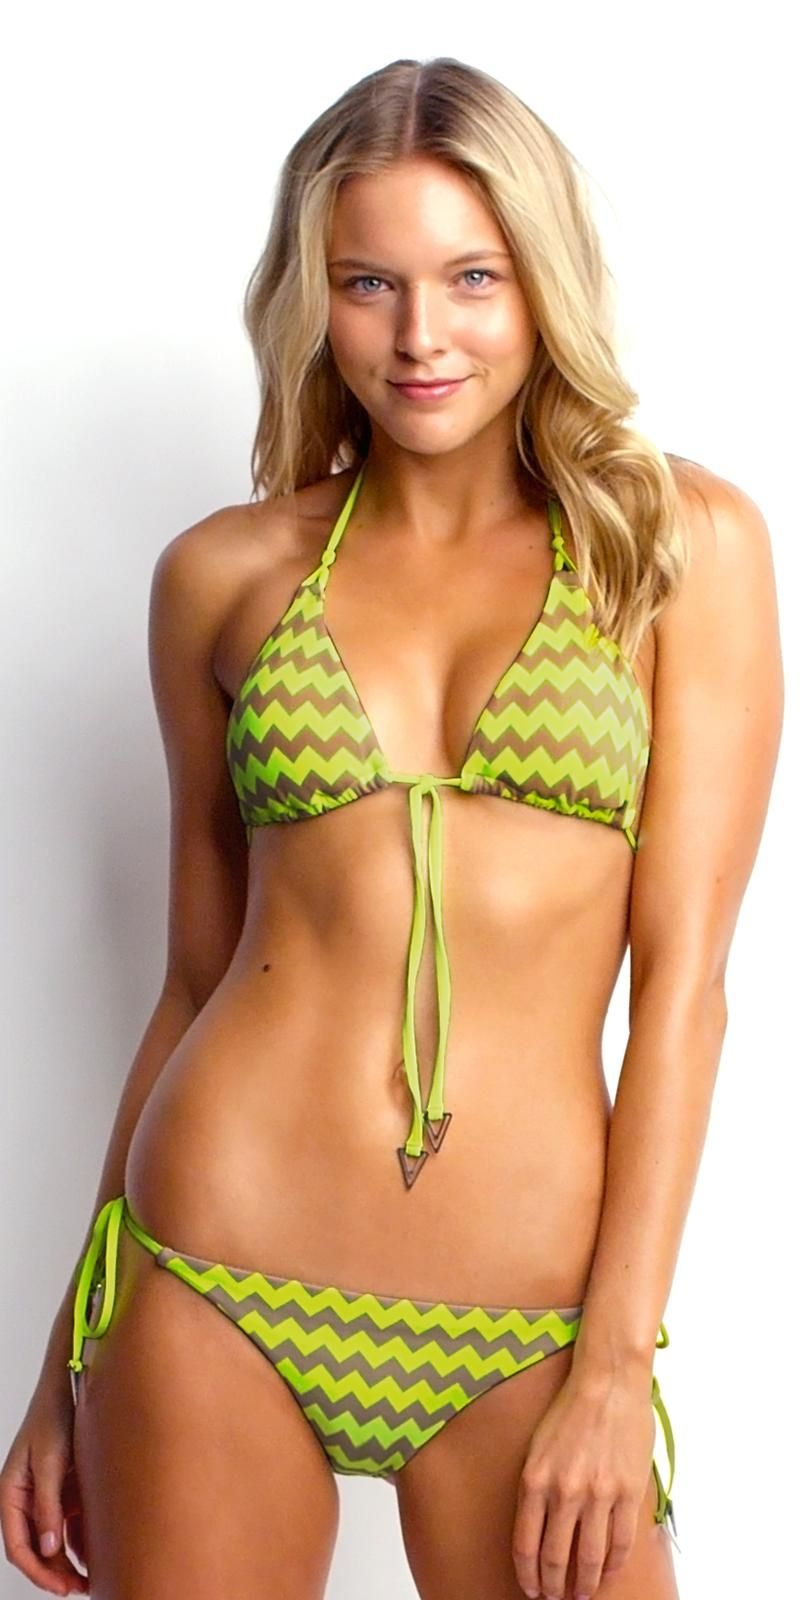 seafolly 2014 mod club zig zag bikini southbeachswimsuits bikinis pinterest zig zag. Black Bedroom Furniture Sets. Home Design Ideas